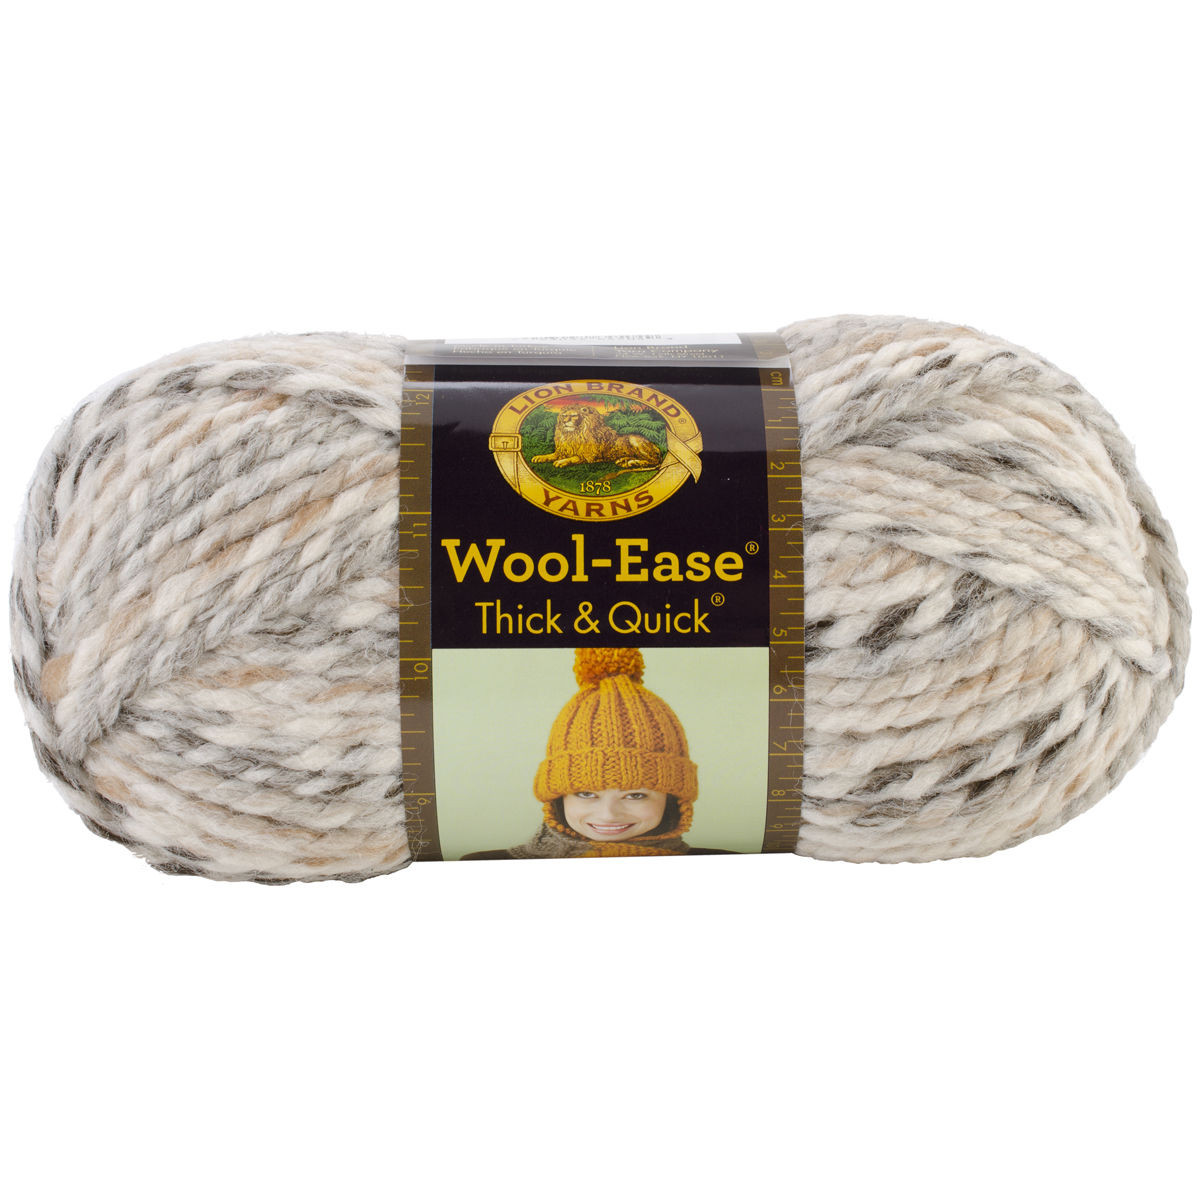 Wool Ease Thick & Quick Yarn Best Of Wool Ease Thick & Quick Yarn Sandstone Of Great 46 Pictures Wool Ease Thick & Quick Yarn